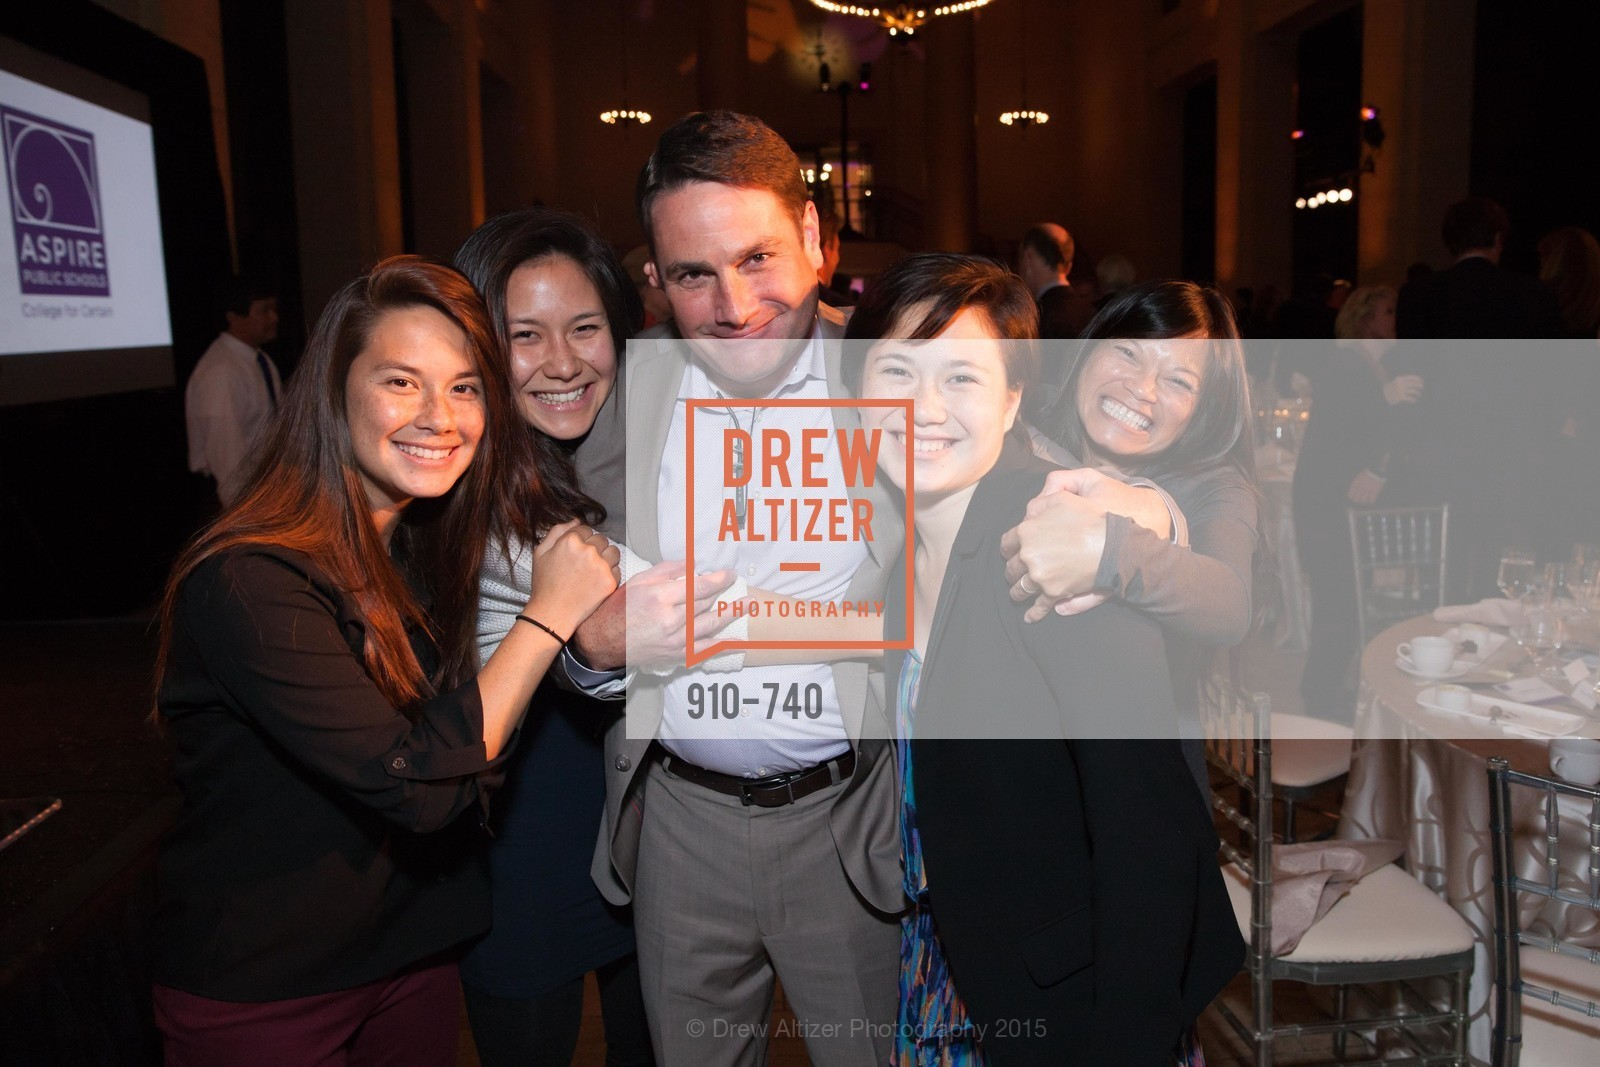 Madison Willcox, Andrea Willcox, James Willcox, Frankie Willcox, Simone Willcox, Aspire Annual College for Certain Dinne, US, May 21st, 2015,Drew Altizer, Drew Altizer Photography, full-service agency, private events, San Francisco photographer, photographer california